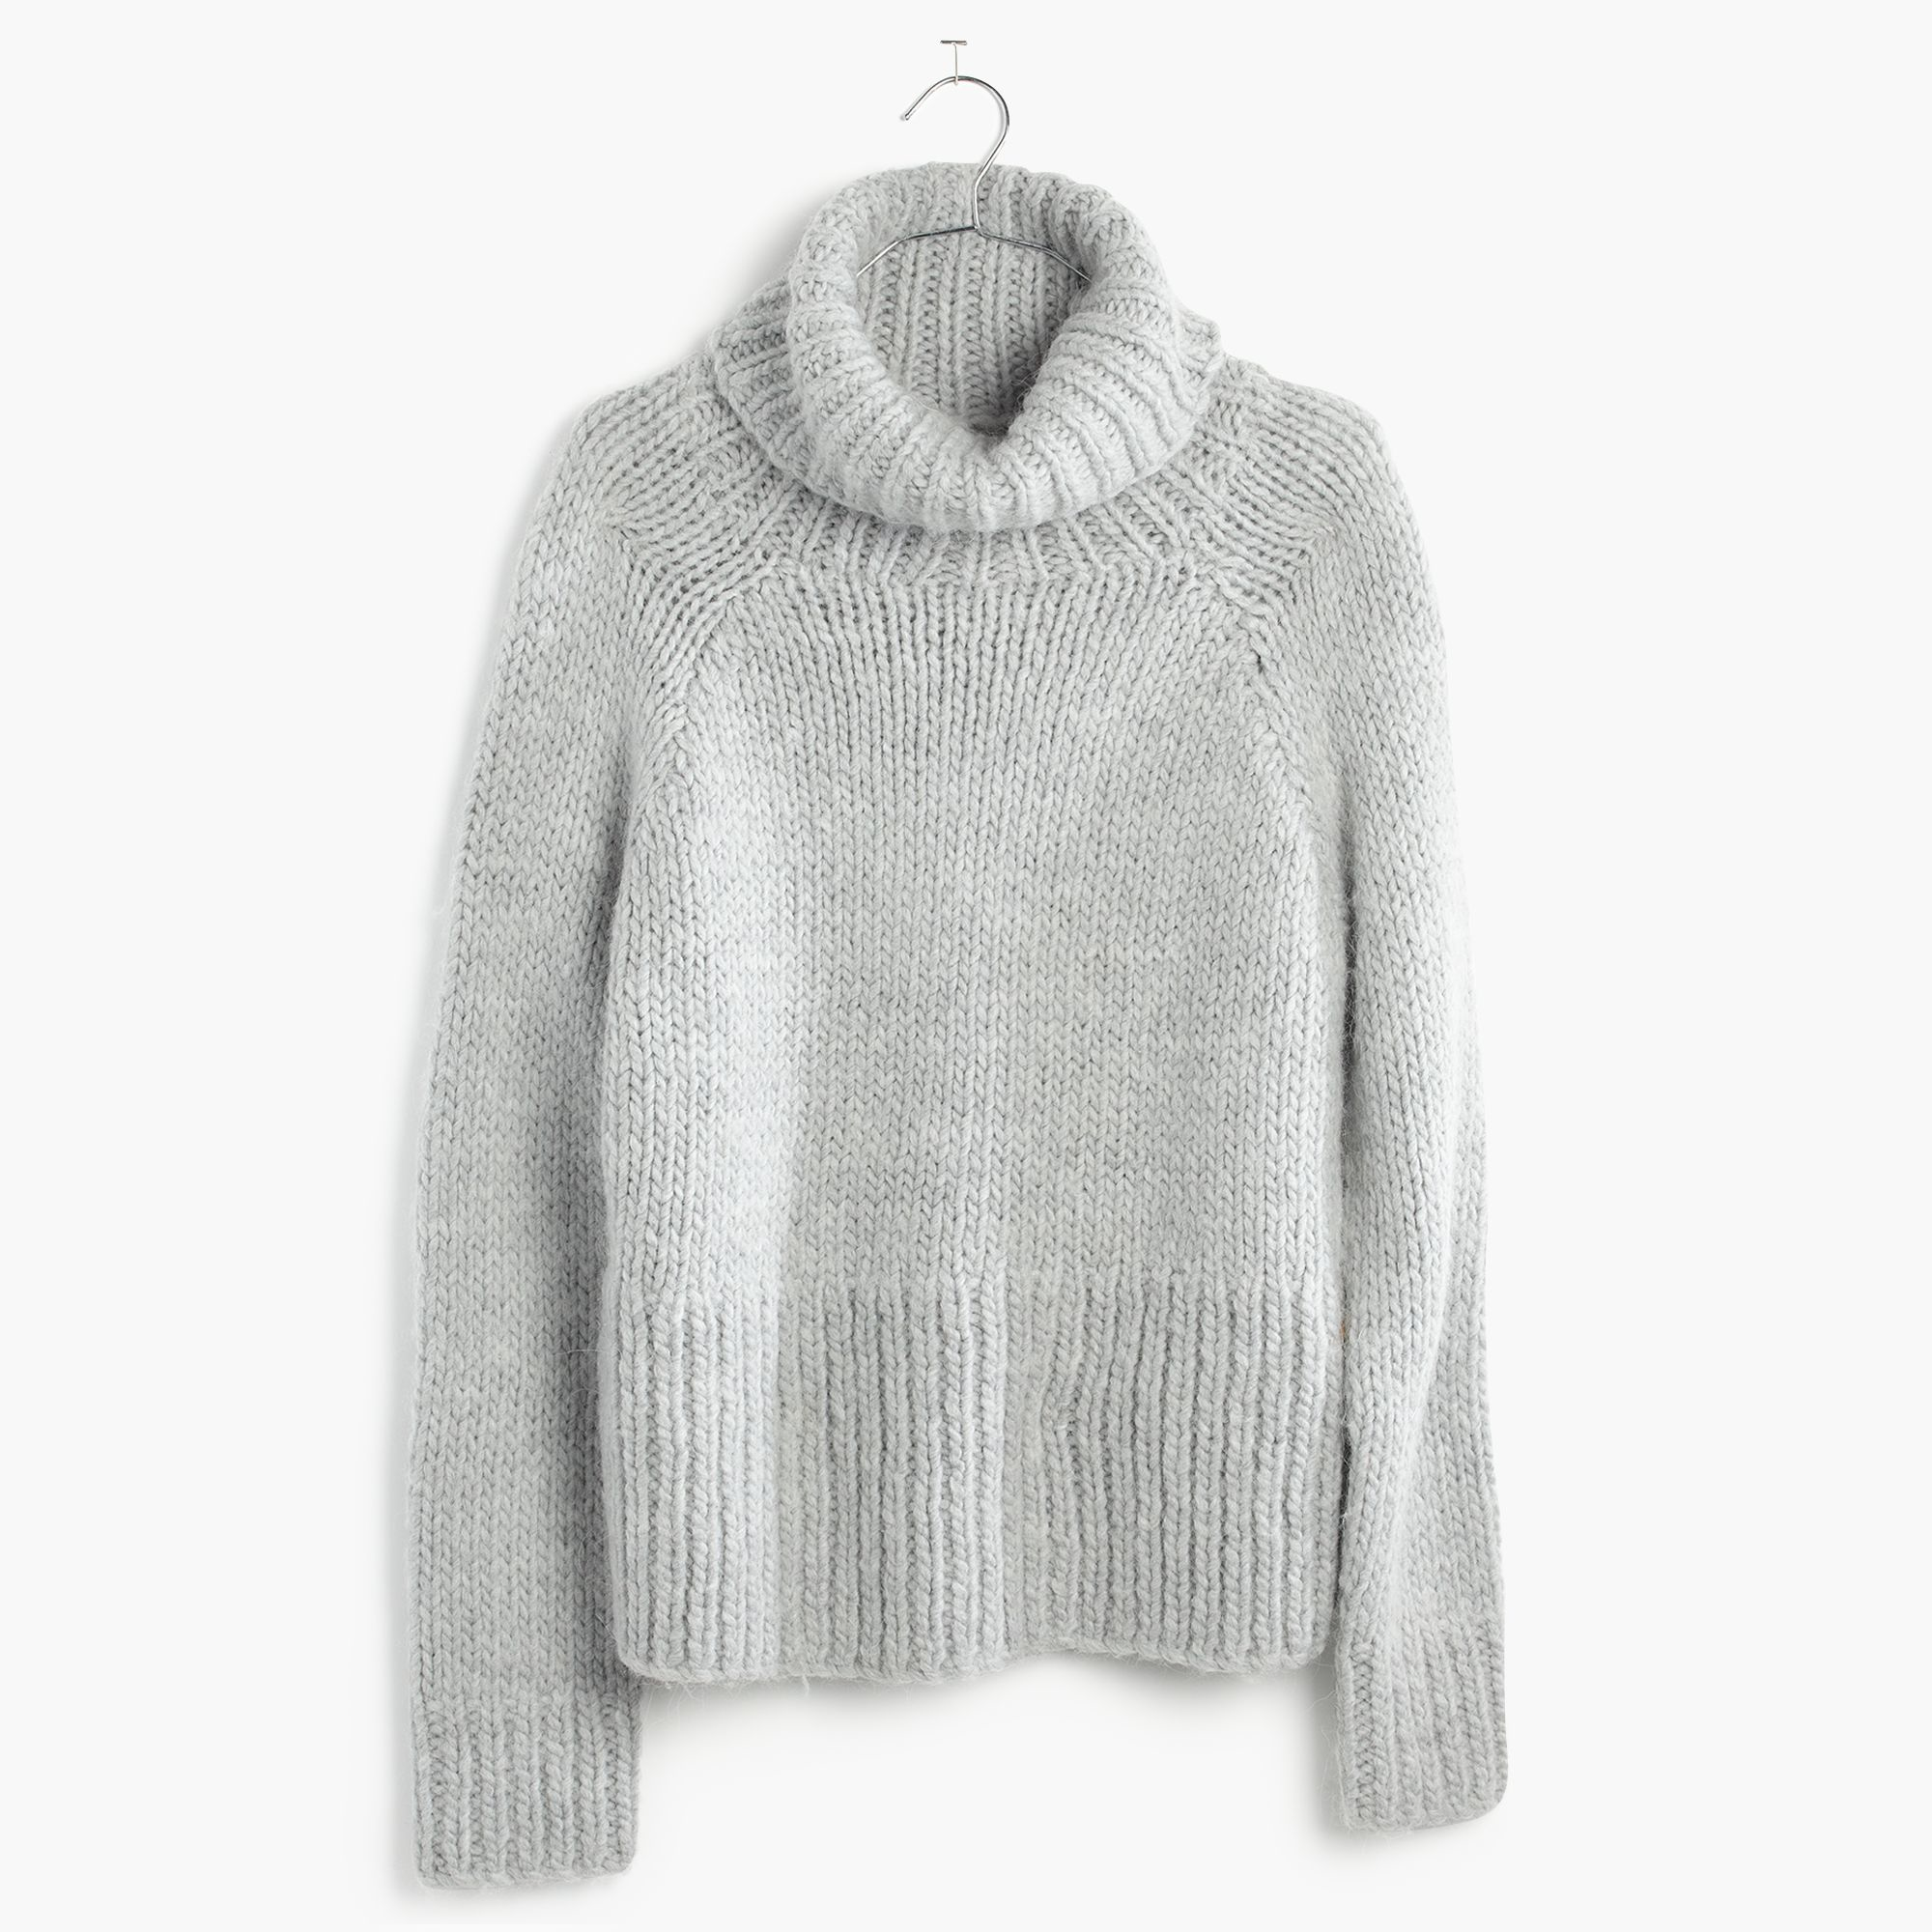 Madewell Handknit Cozy Turtleneck Sweater in Gray | Lyst